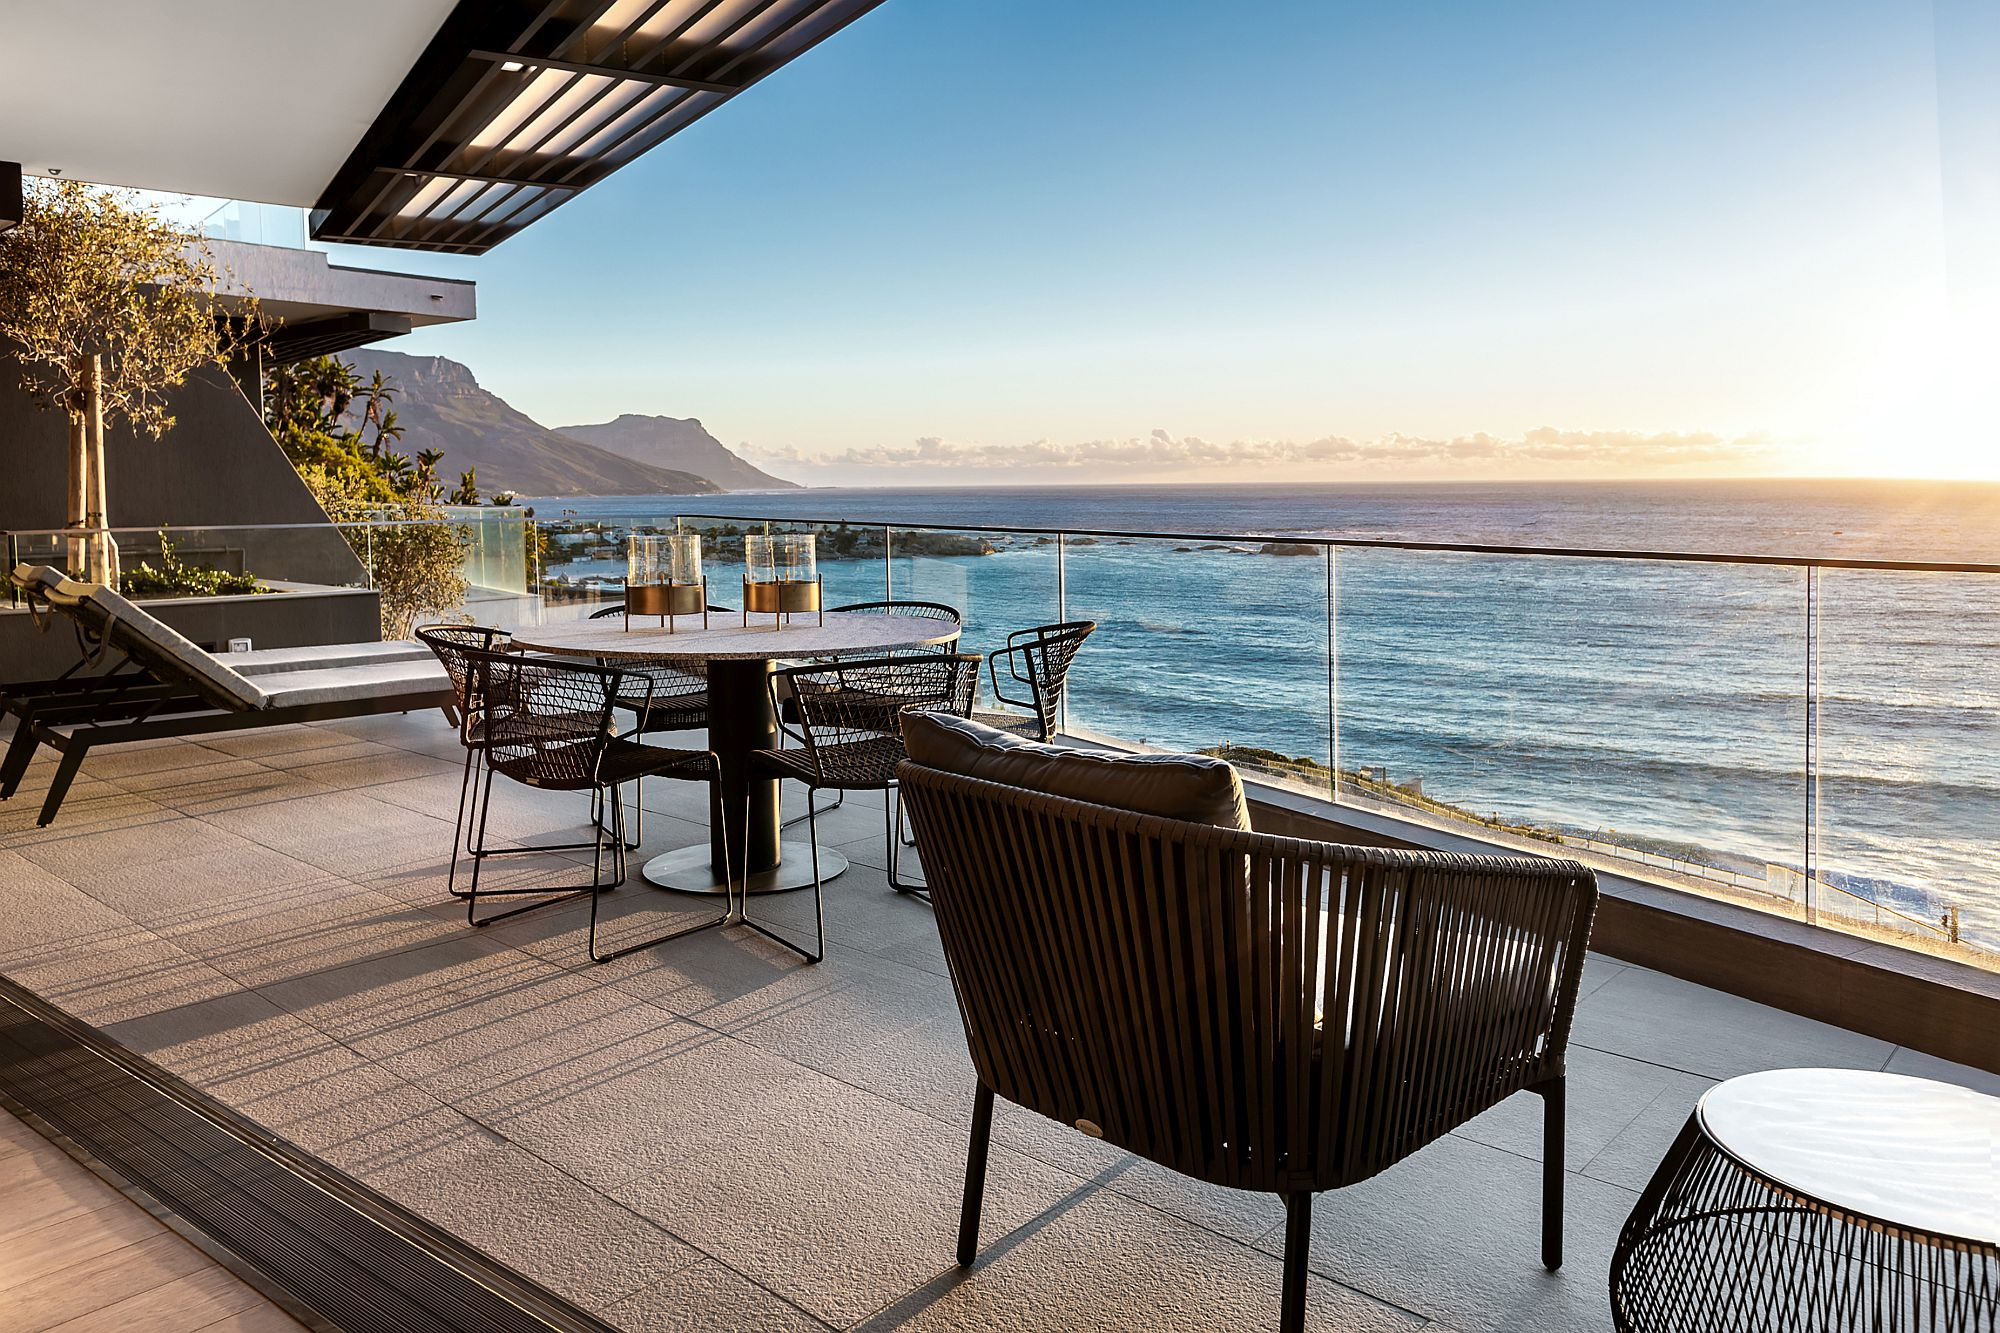 1563443577 808 quiet sophistication draped in the best of cape town stunning clifton 301 by okha - Quiet Sophistication Draped in the Best of Cape Town: Stunning Clifton 301 by OKHA